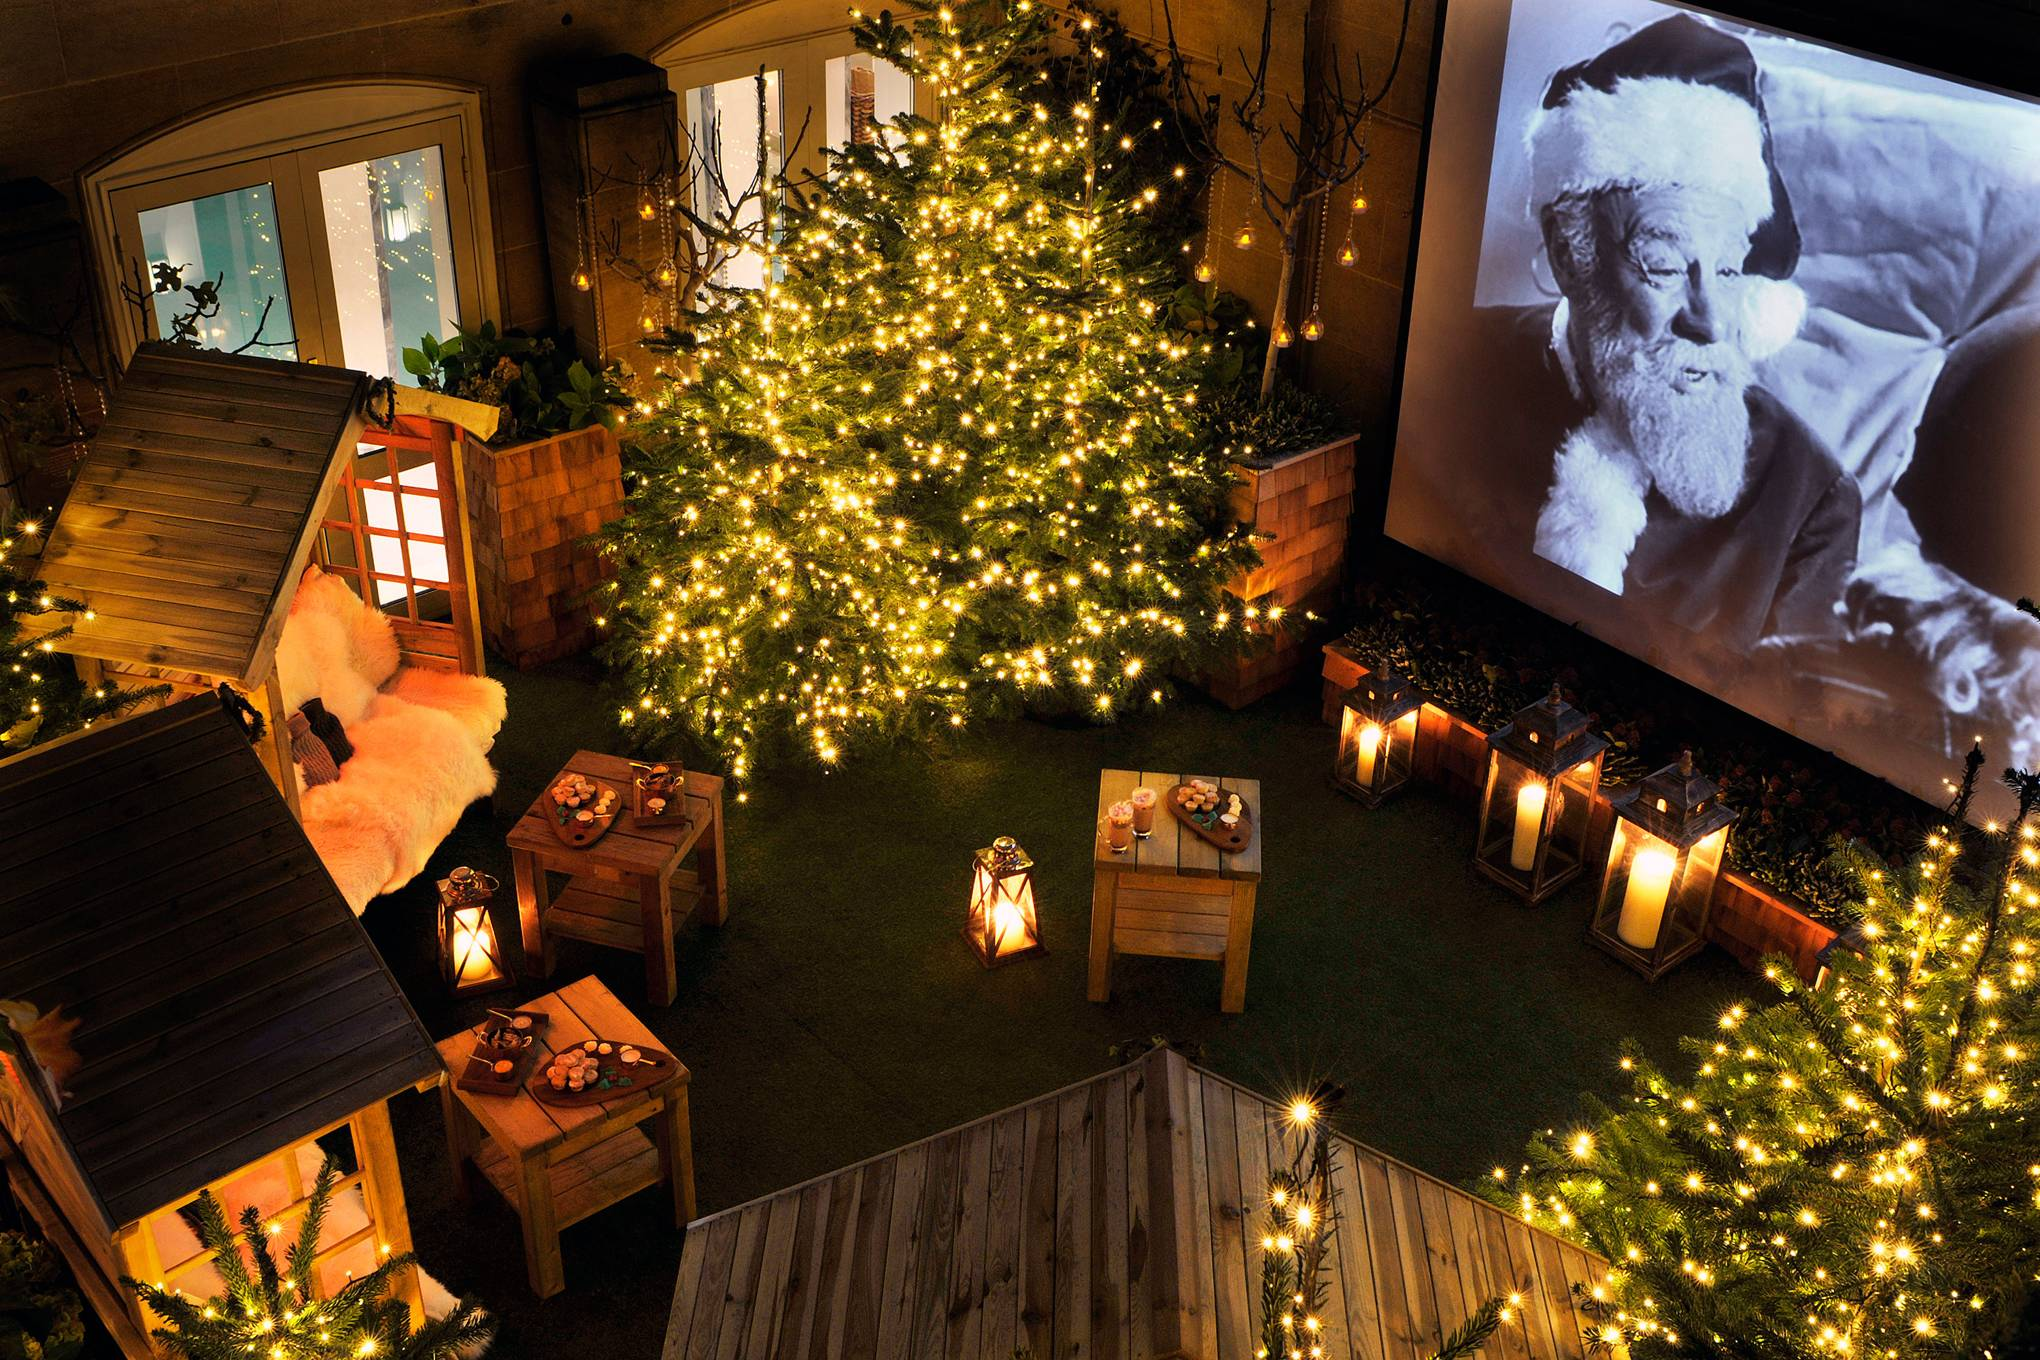 Things To Do Christmas 2019.Christmas Things To Do In London 2019 Our Pick Cn Traveller